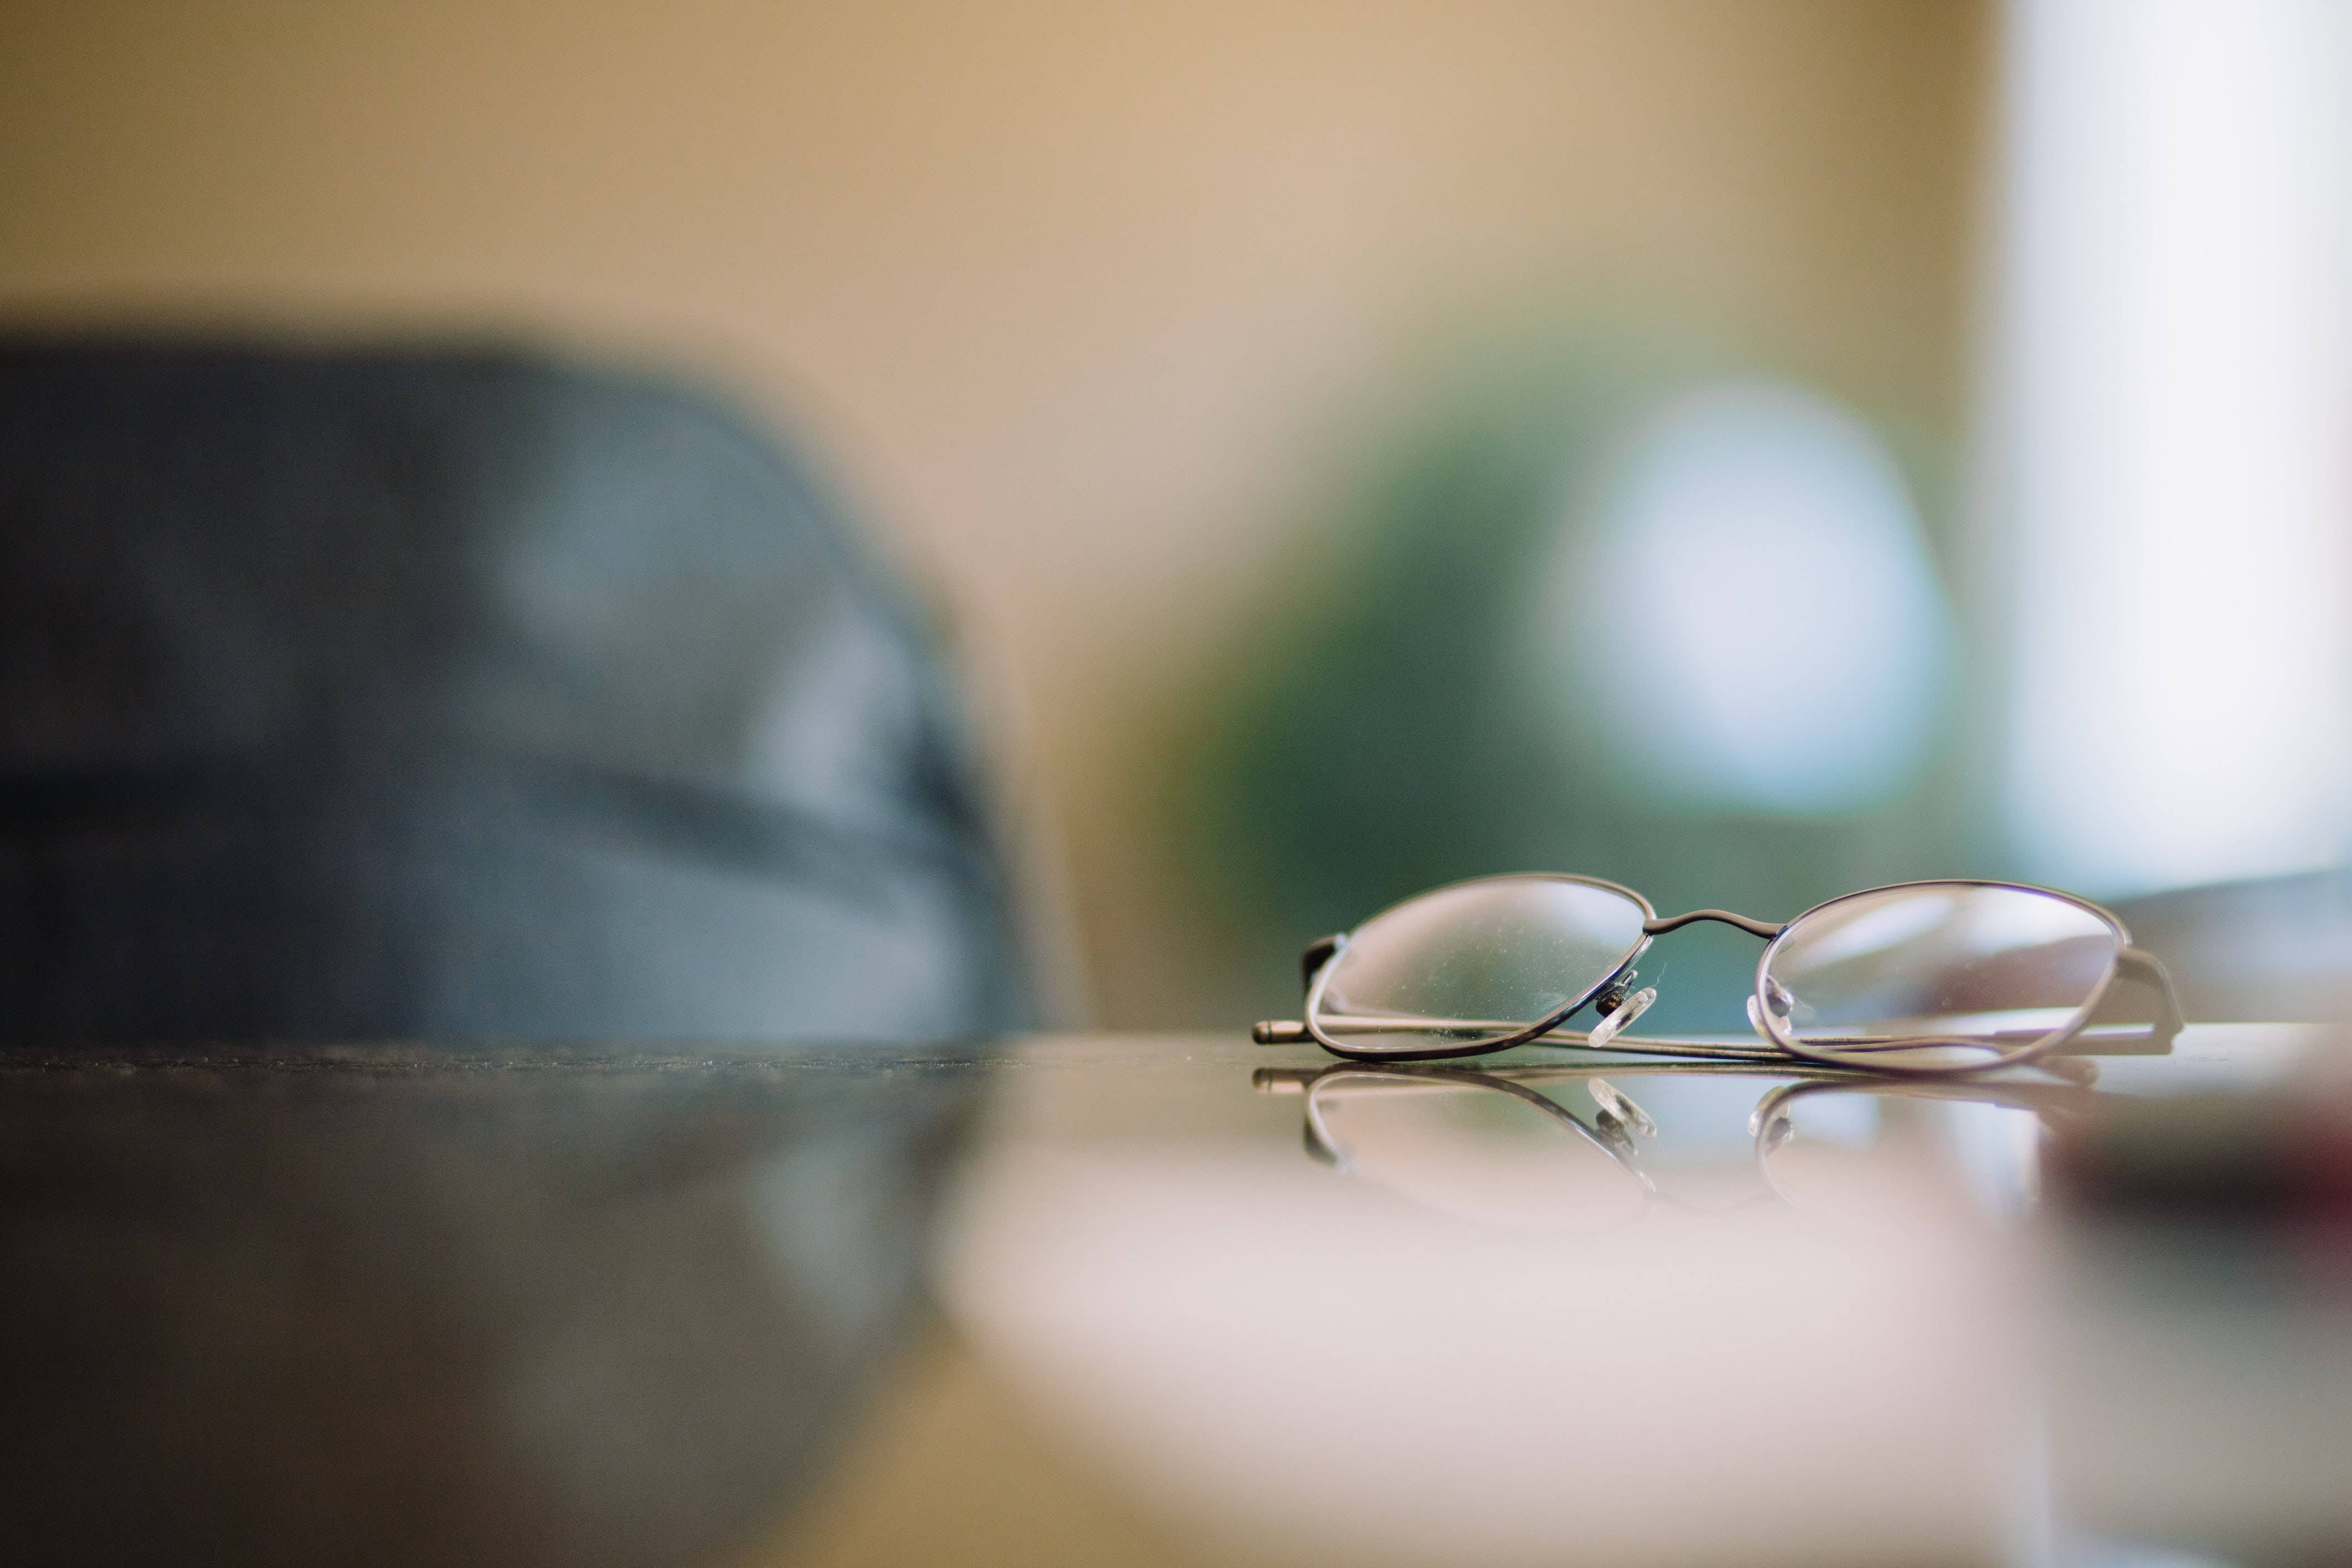 Close-up of a pair of glasses on a glossy surface